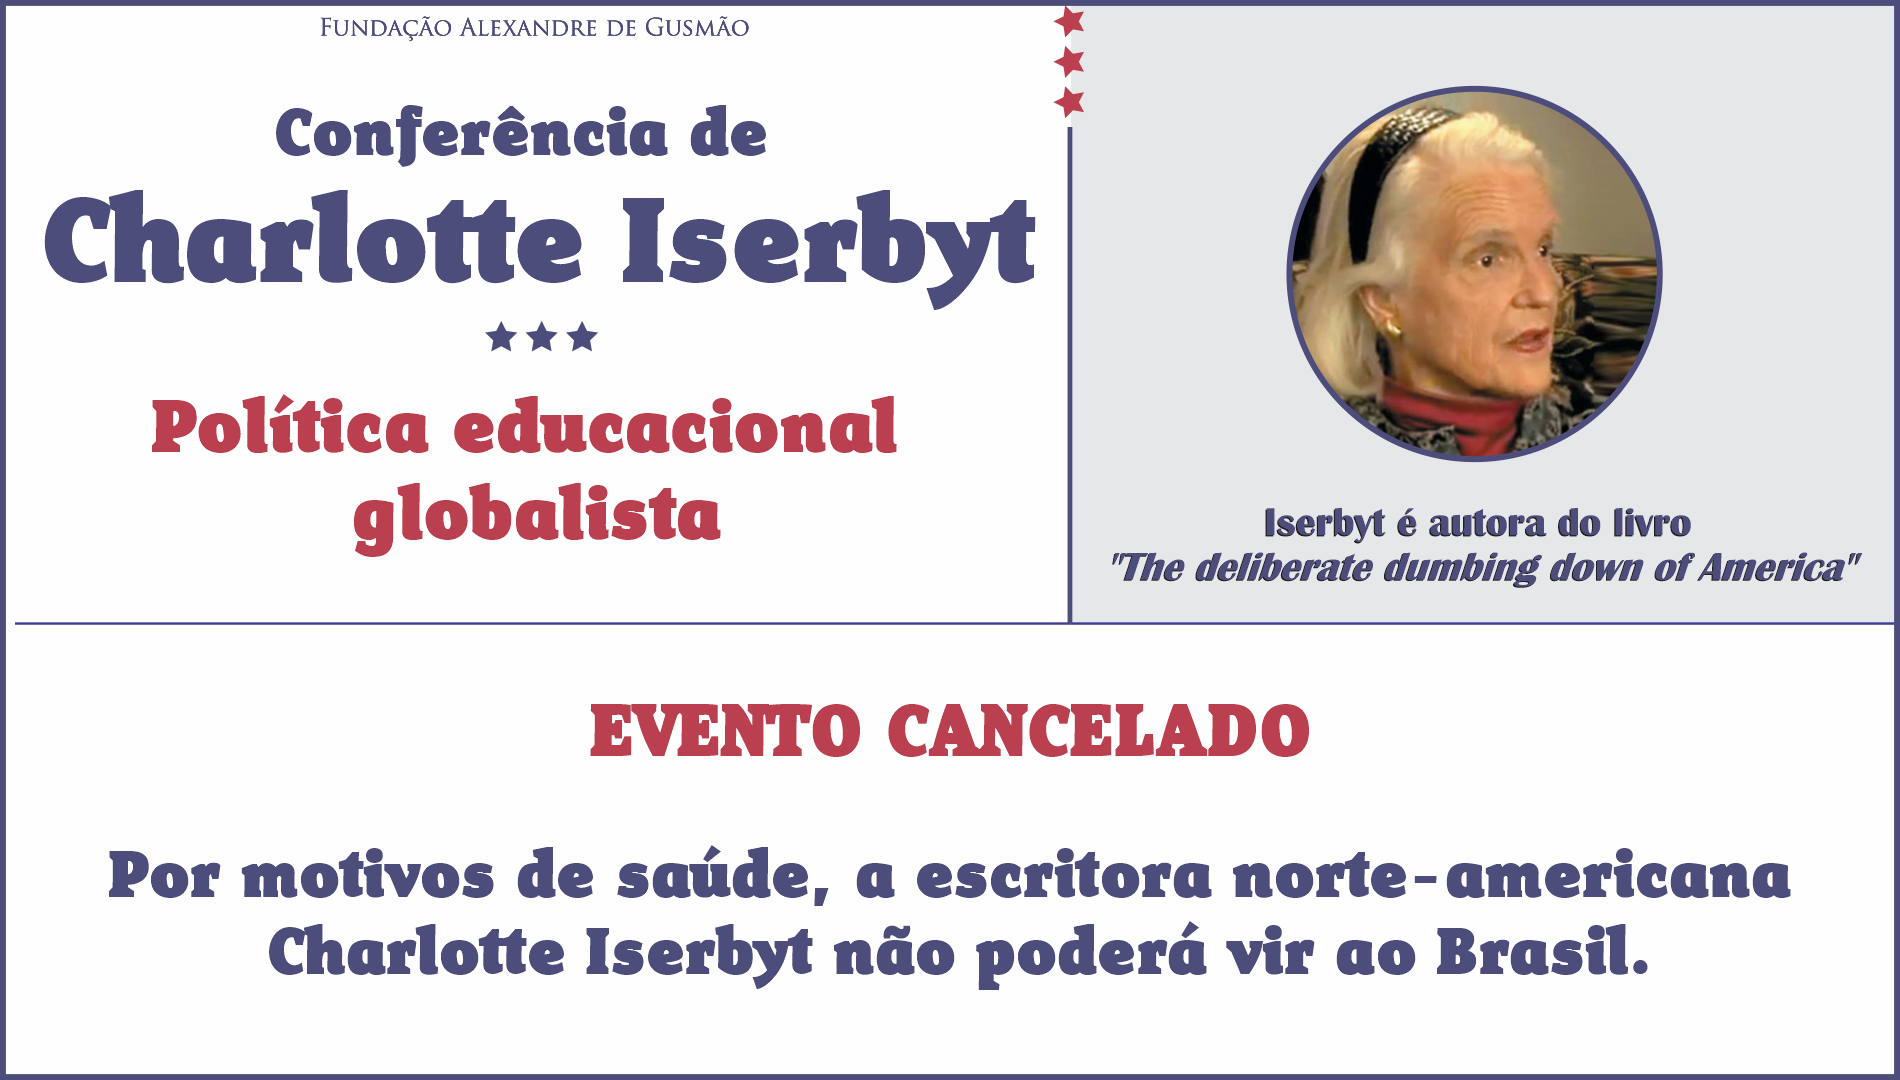 Cancellation of the conference on globalist educational policies